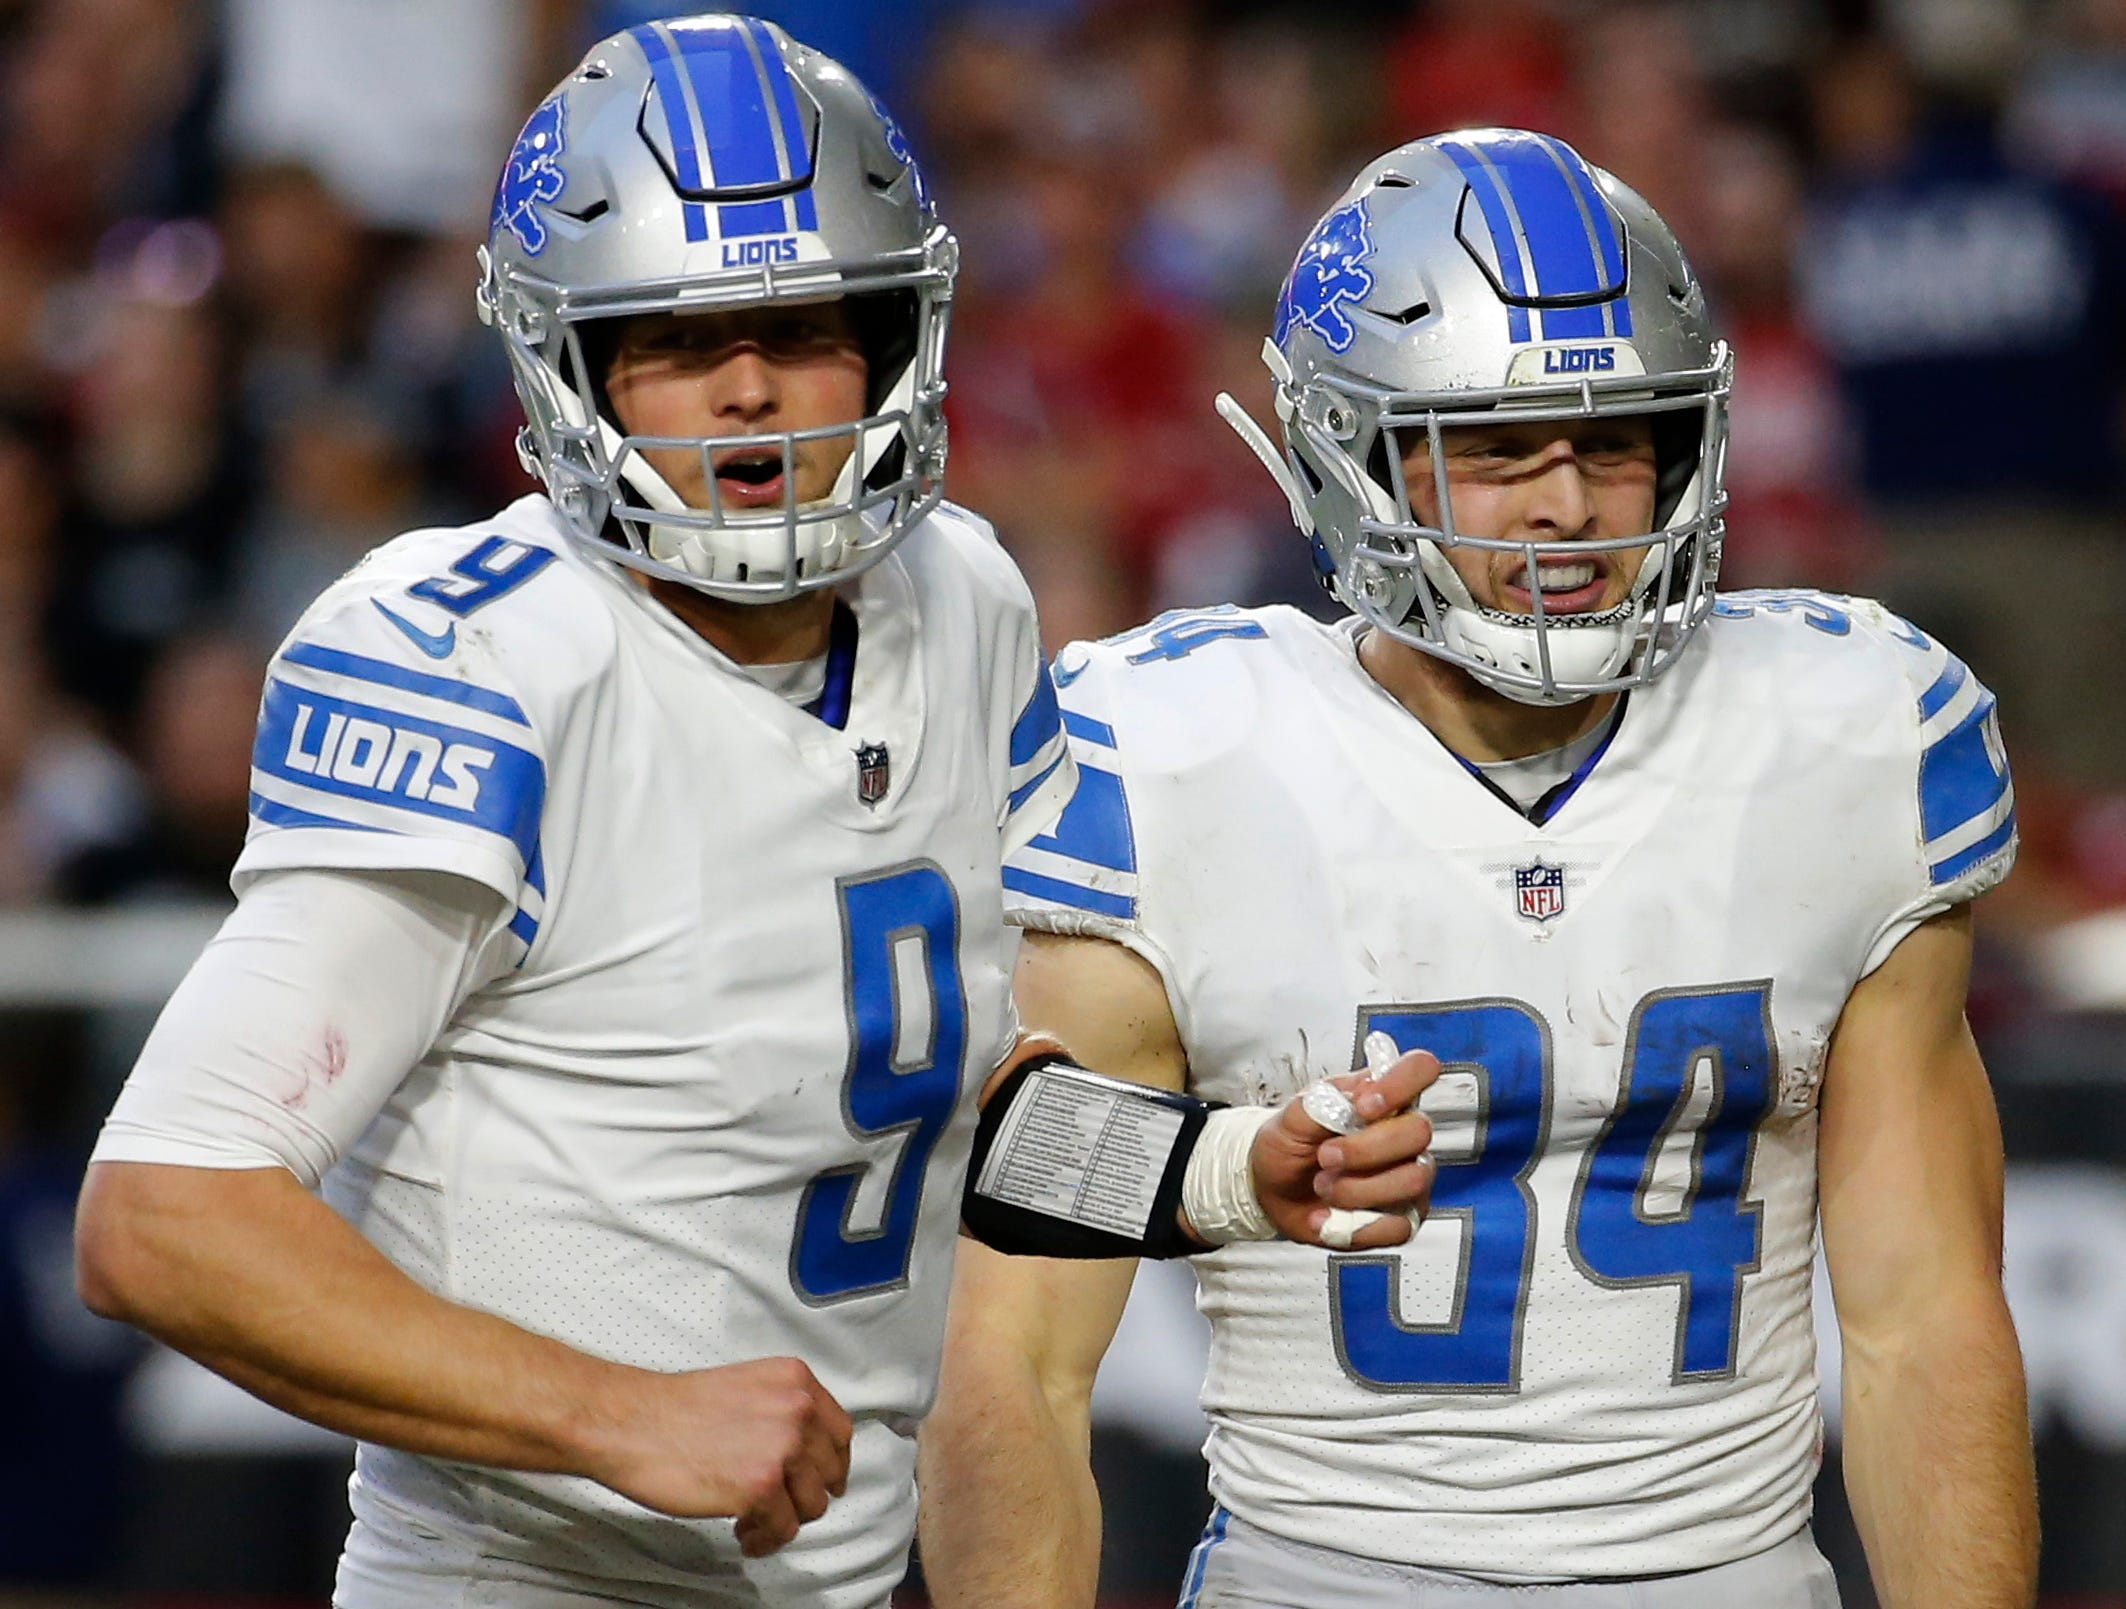 Detroit Lions running back Zach Zenner (34) celebrates his touchdown with quarterback Matthew Stafford (9) during the second half of NFL football game against the Arizona Cardinals, Sunday, Dec. 9, 2018, in Glendale, Ariz. (AP Photo/Rick Scuteri)